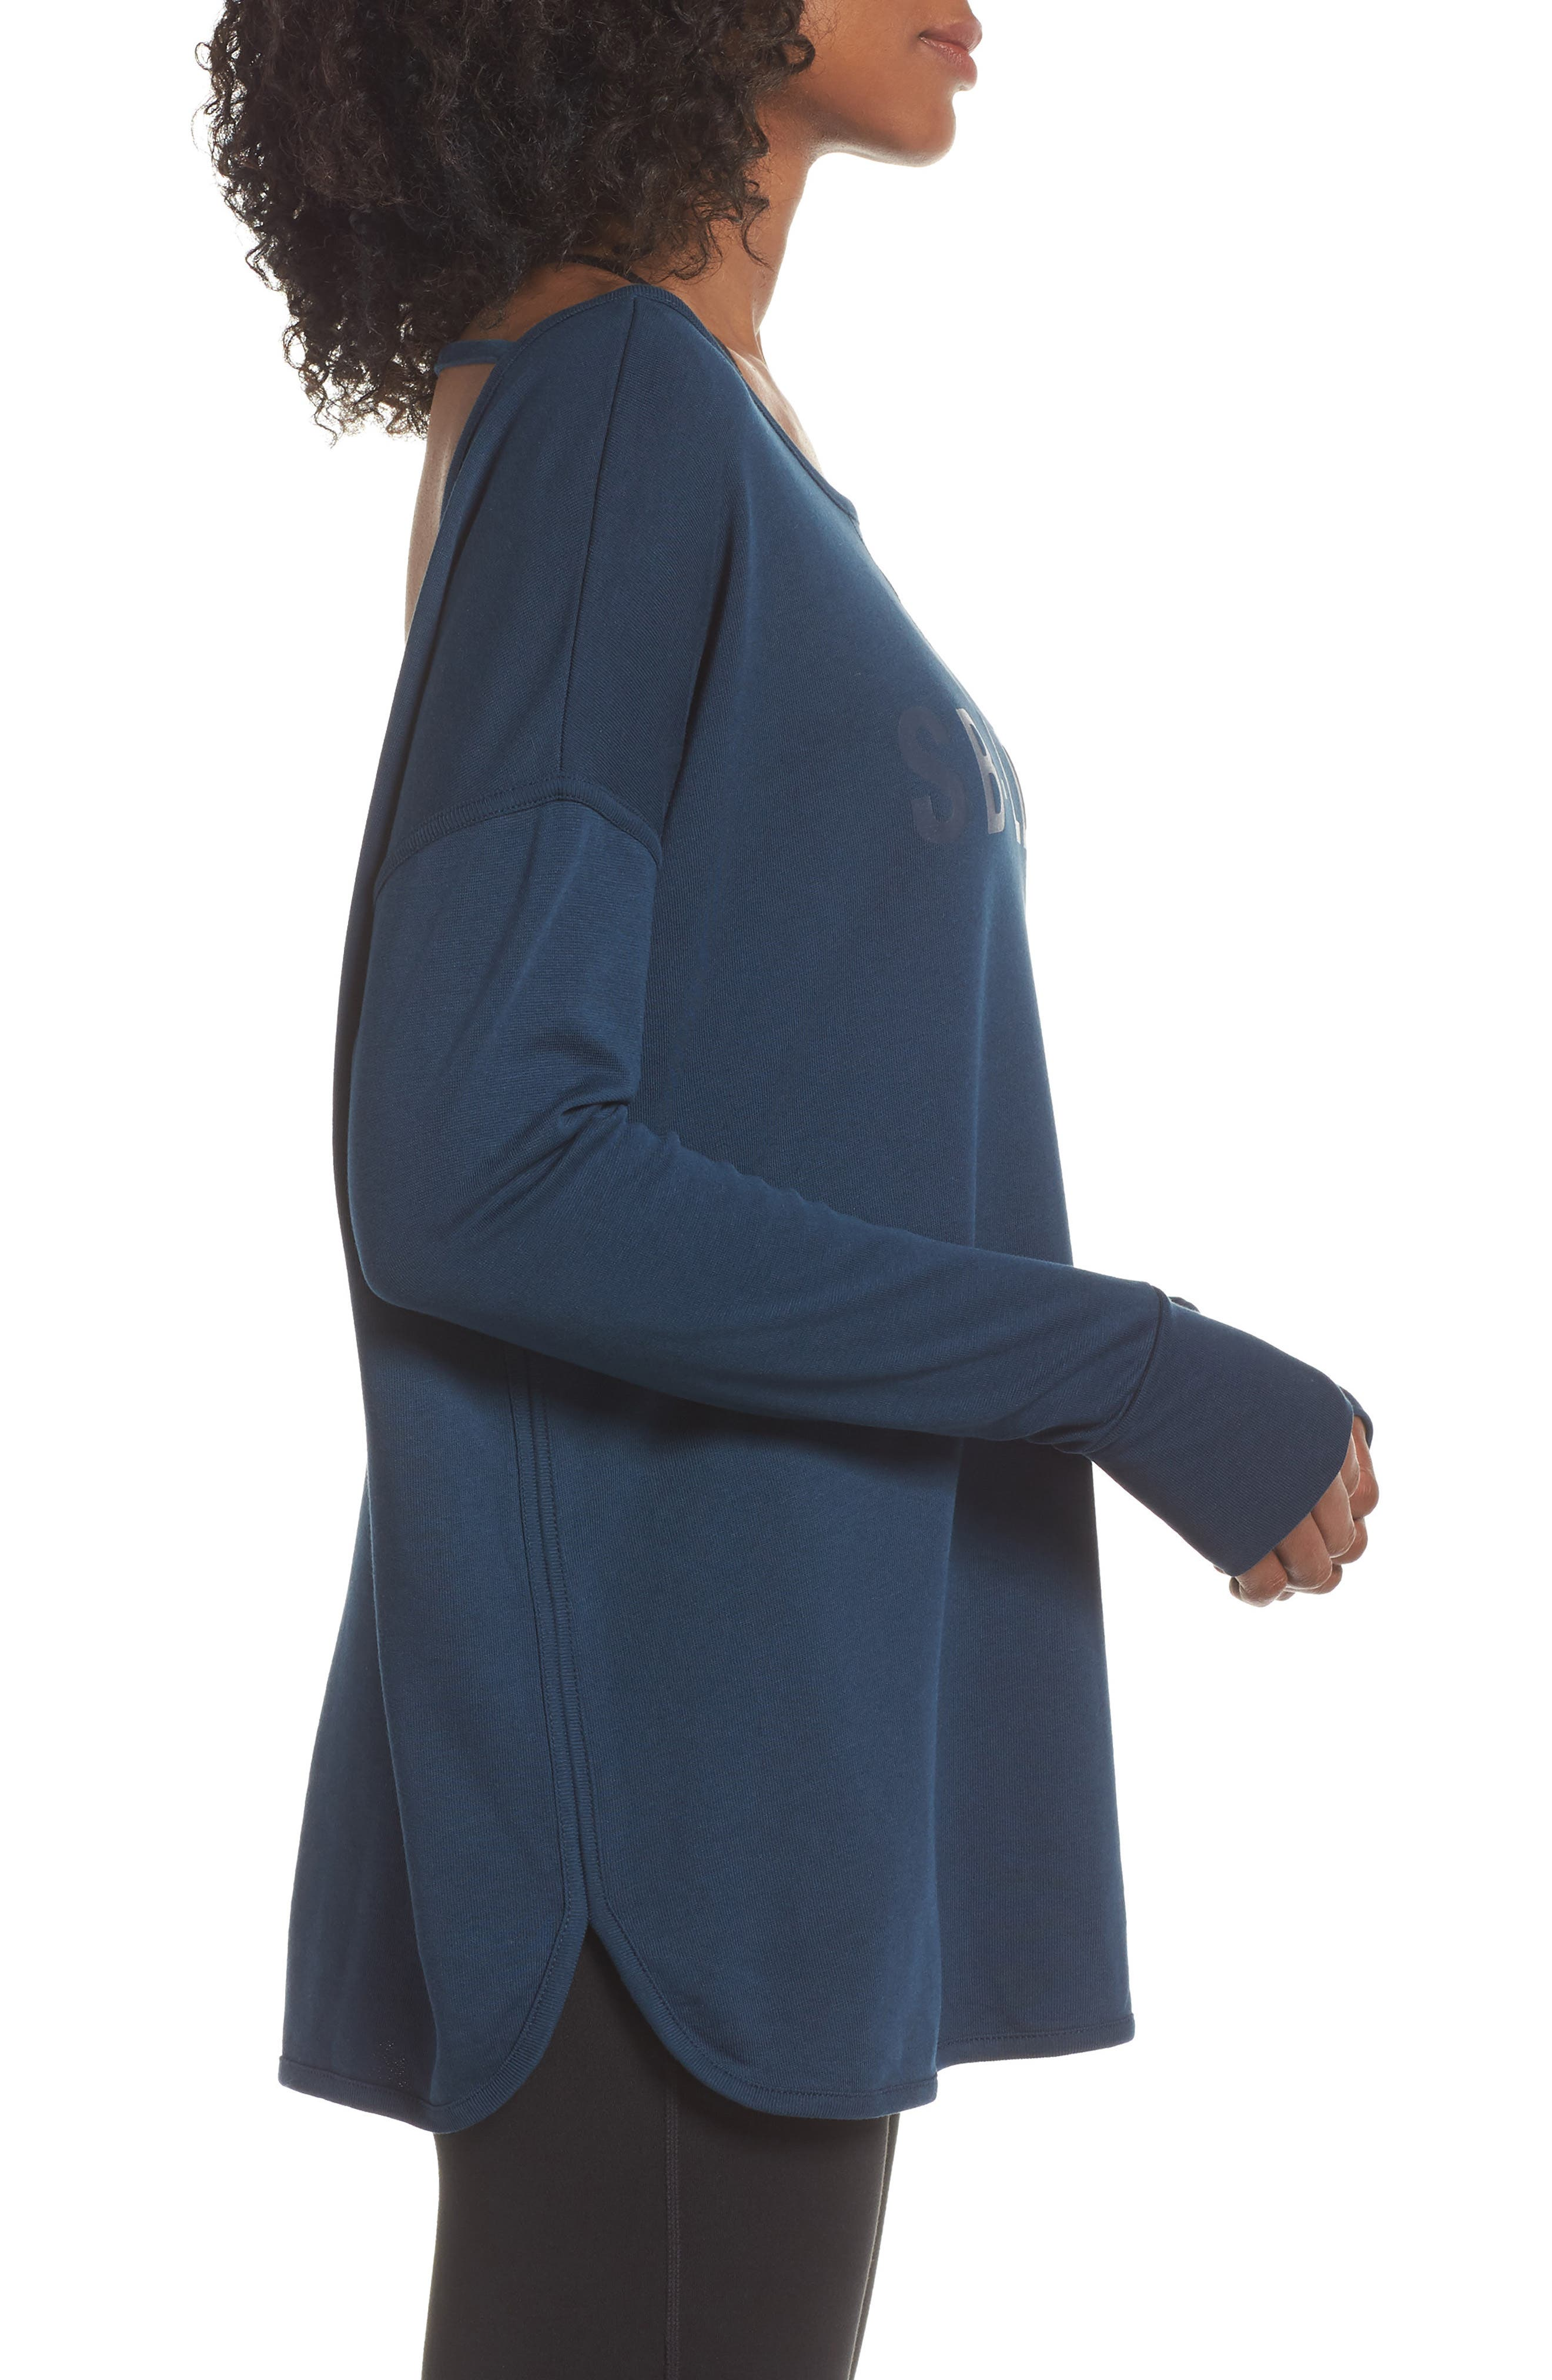 Simhasana Sweatshirt,                             Alternate thumbnail 3, color,                             BEETLE BLUE